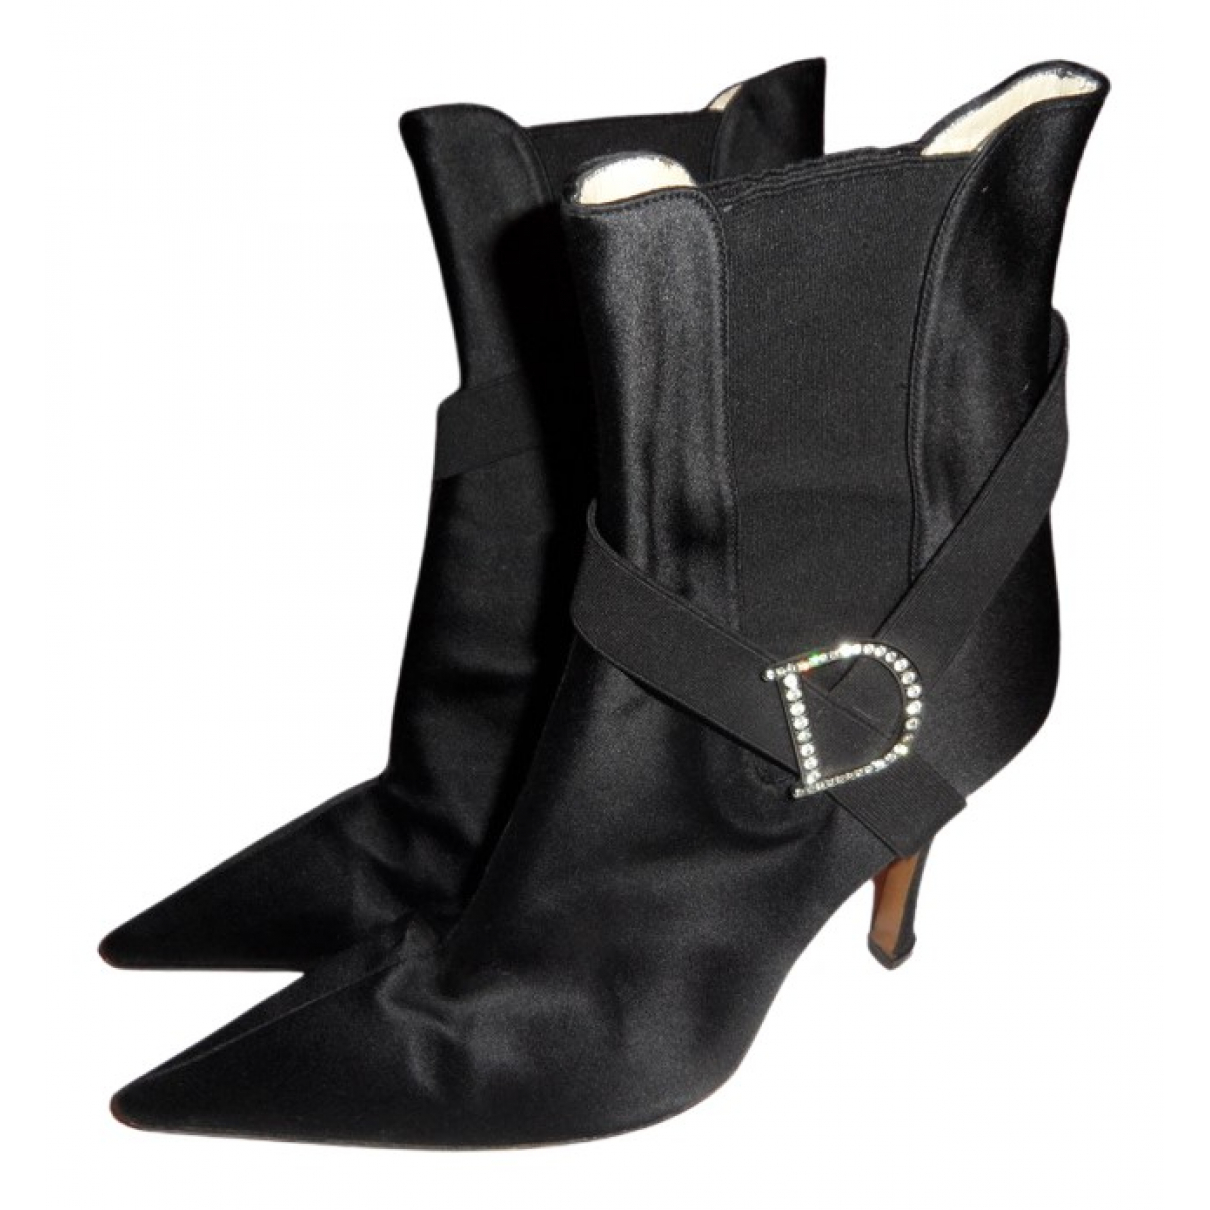 Dior N Black Cloth Ankle boots for Women 38 EU